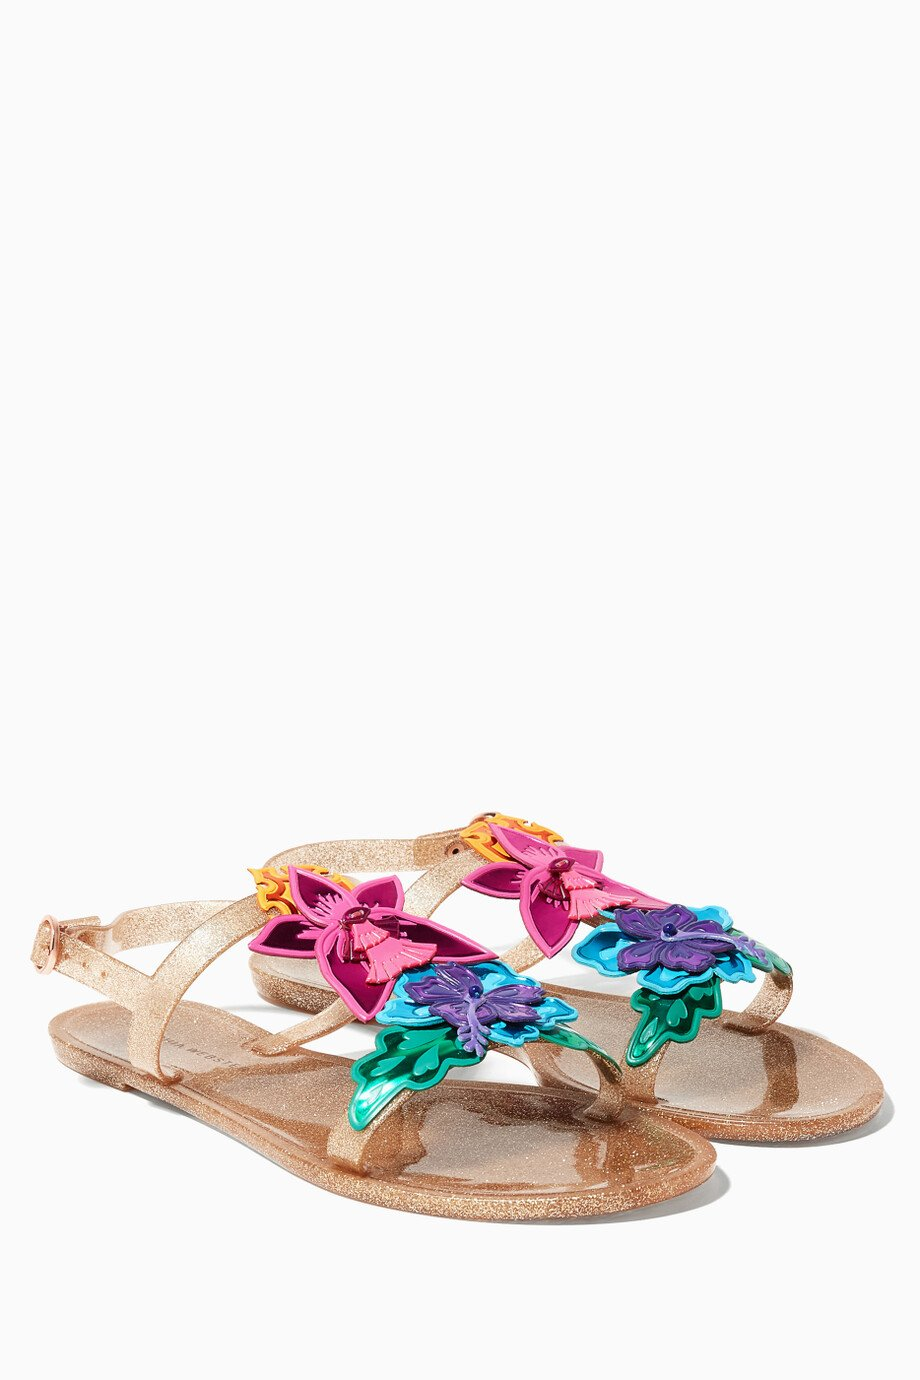 4be1e436712 Shop Sophia Webster Gold Gold Hula Floral Sandals for Women